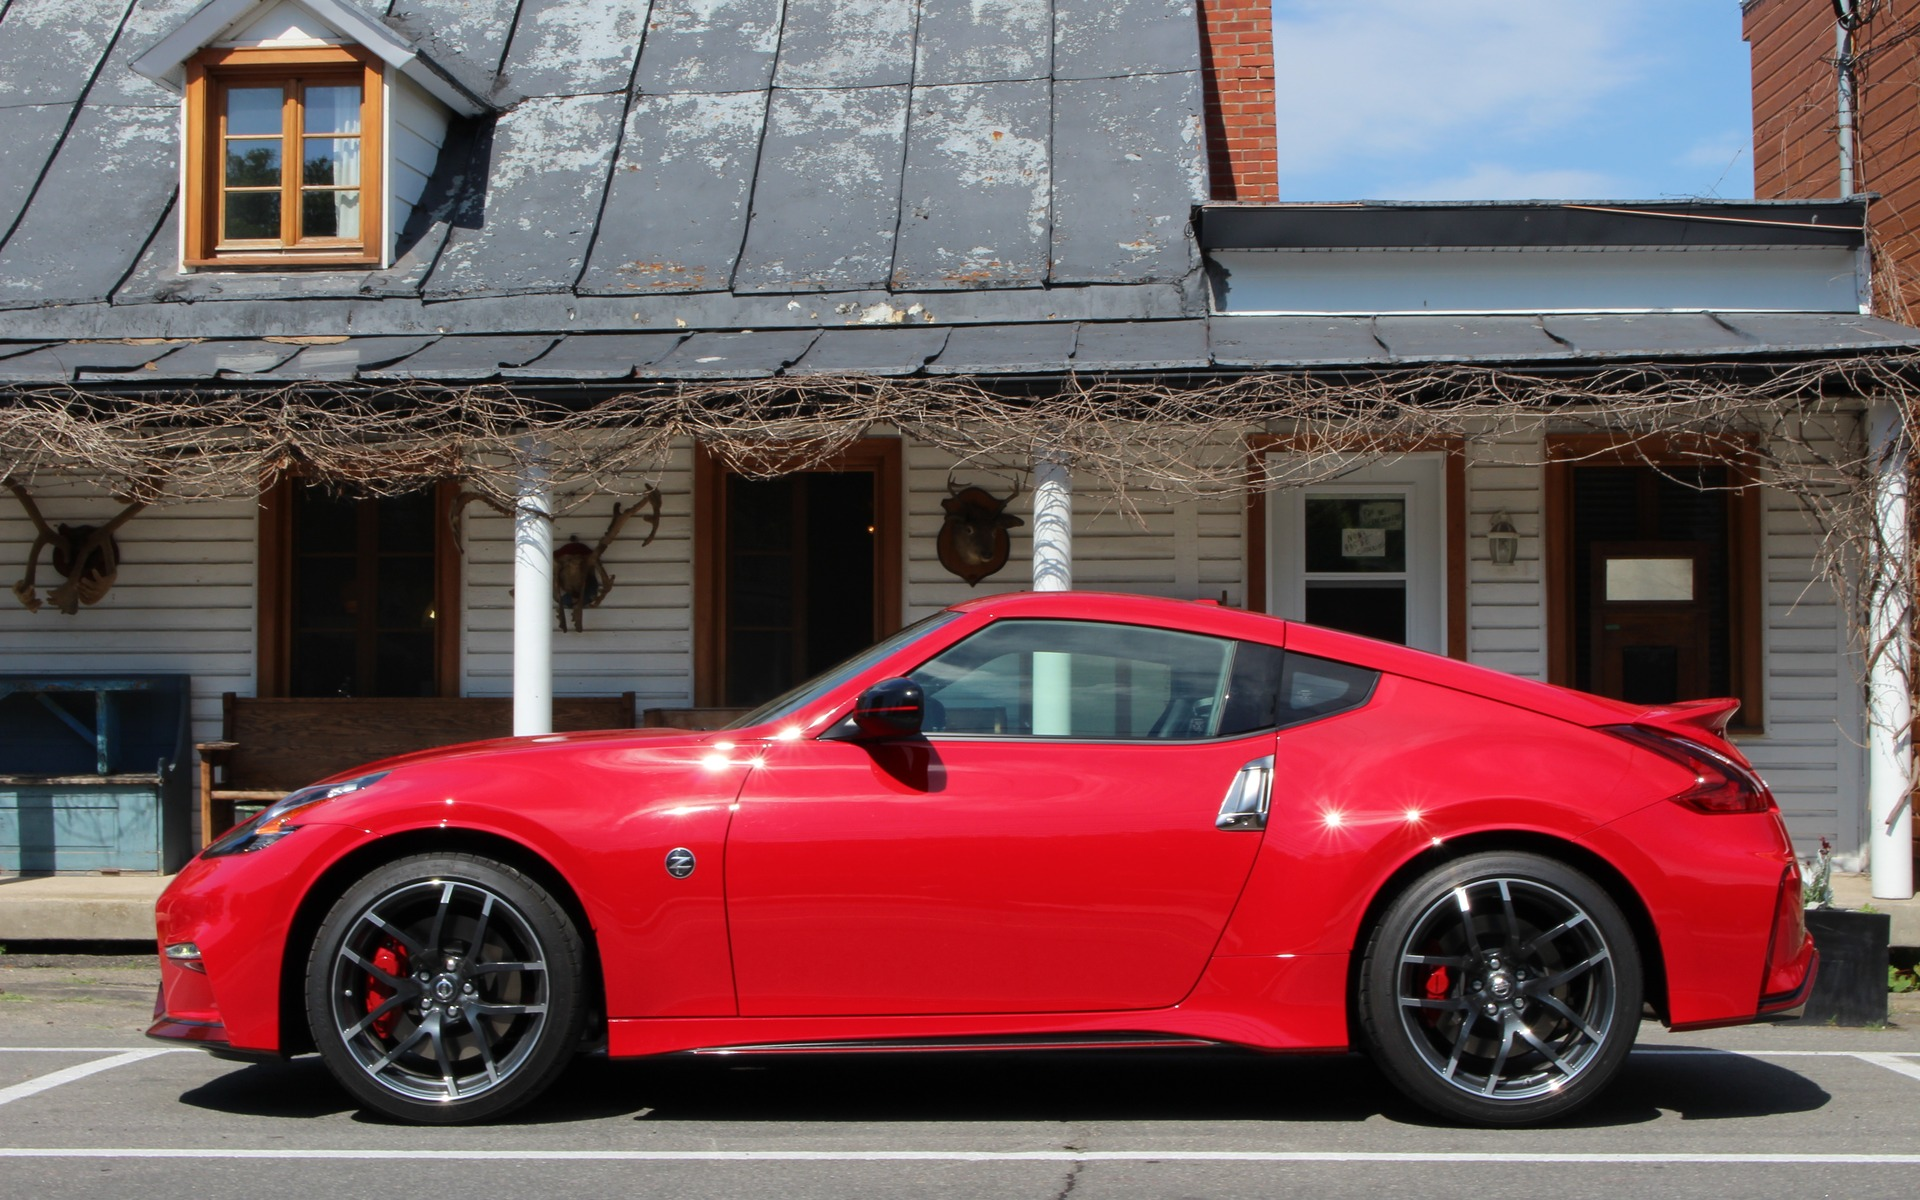 2019 Nissan 370Z NISMO: Endangered Species - The Car Guide